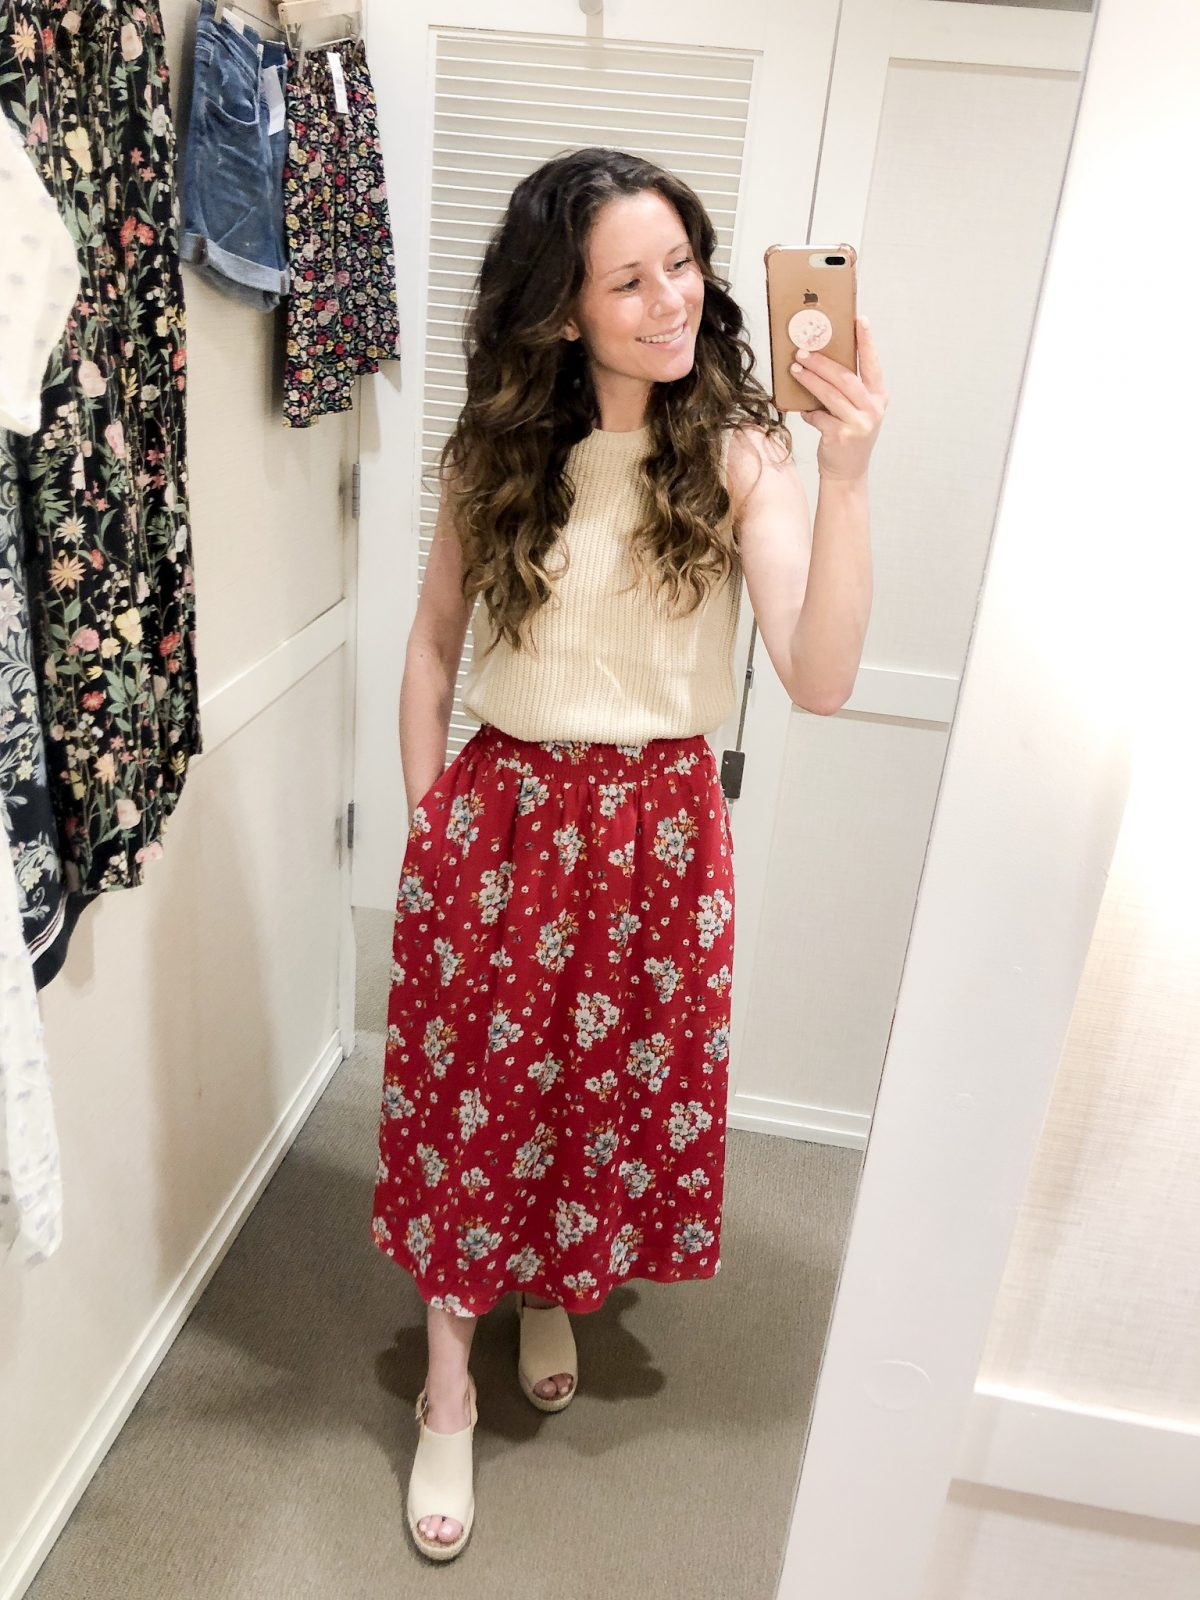 Tan Sweater Tank and Red Floral Skirt LOFT Confessions of a Northern Belle